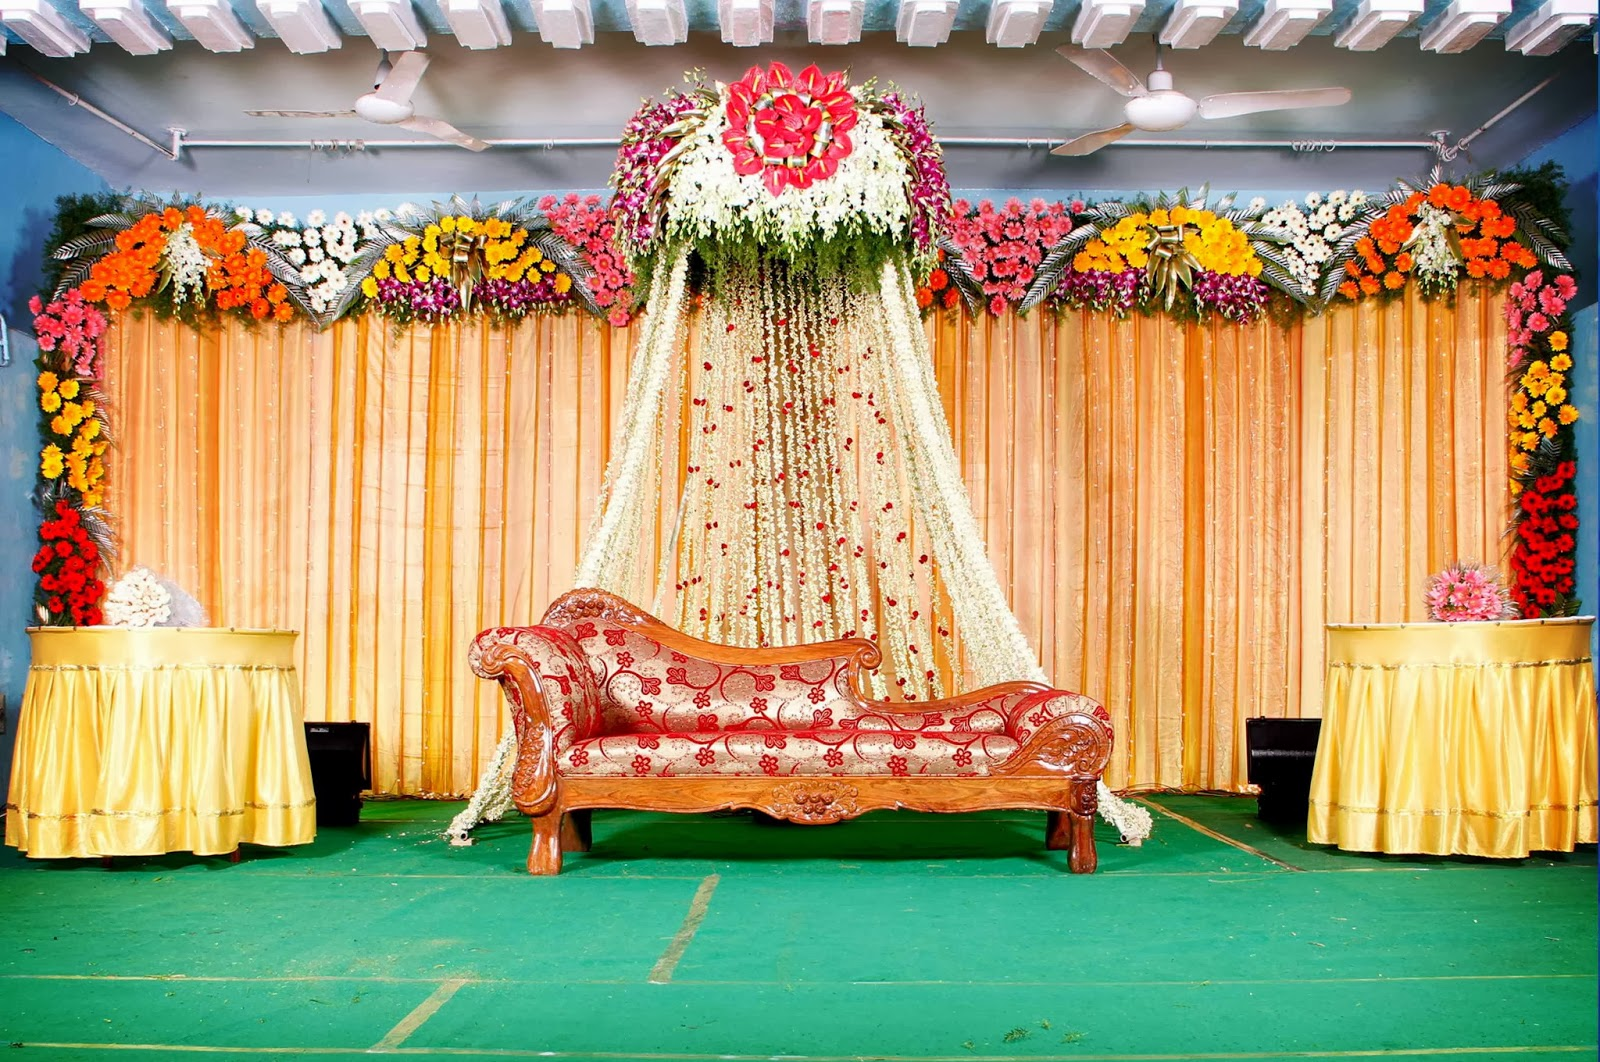 Jana poojitha services cloth flower decorated stage 002 for Muslim wedding home decorations